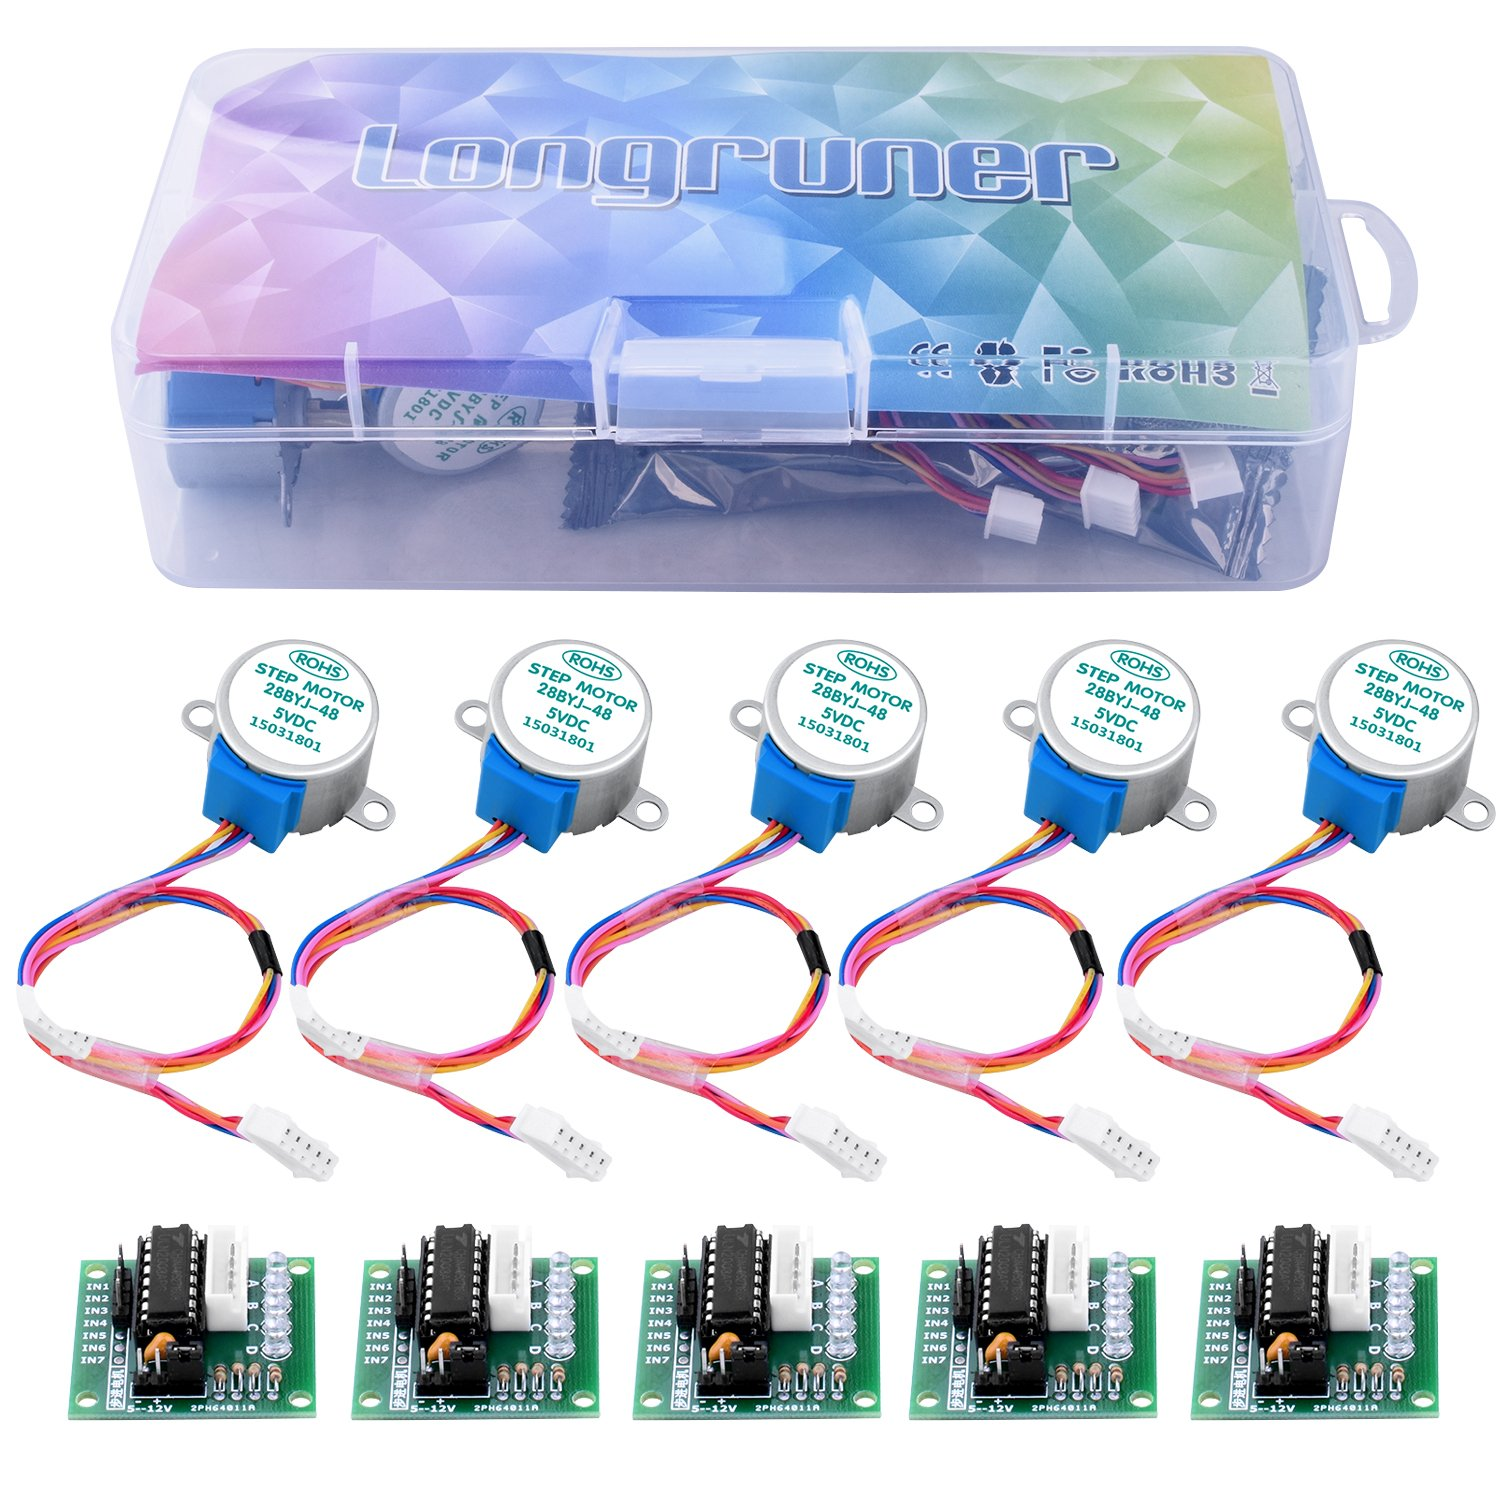 longruner 5pcs Geared Motor Paso a Paso 28BYJ 48/ ULN2003/ 5/ V Motor Paso a Paso ULN2003/ Driver Board para Arduino 5pcs Uln2003 Stepper Motor+5pcs Driver Board+10pcs Jumper Wires